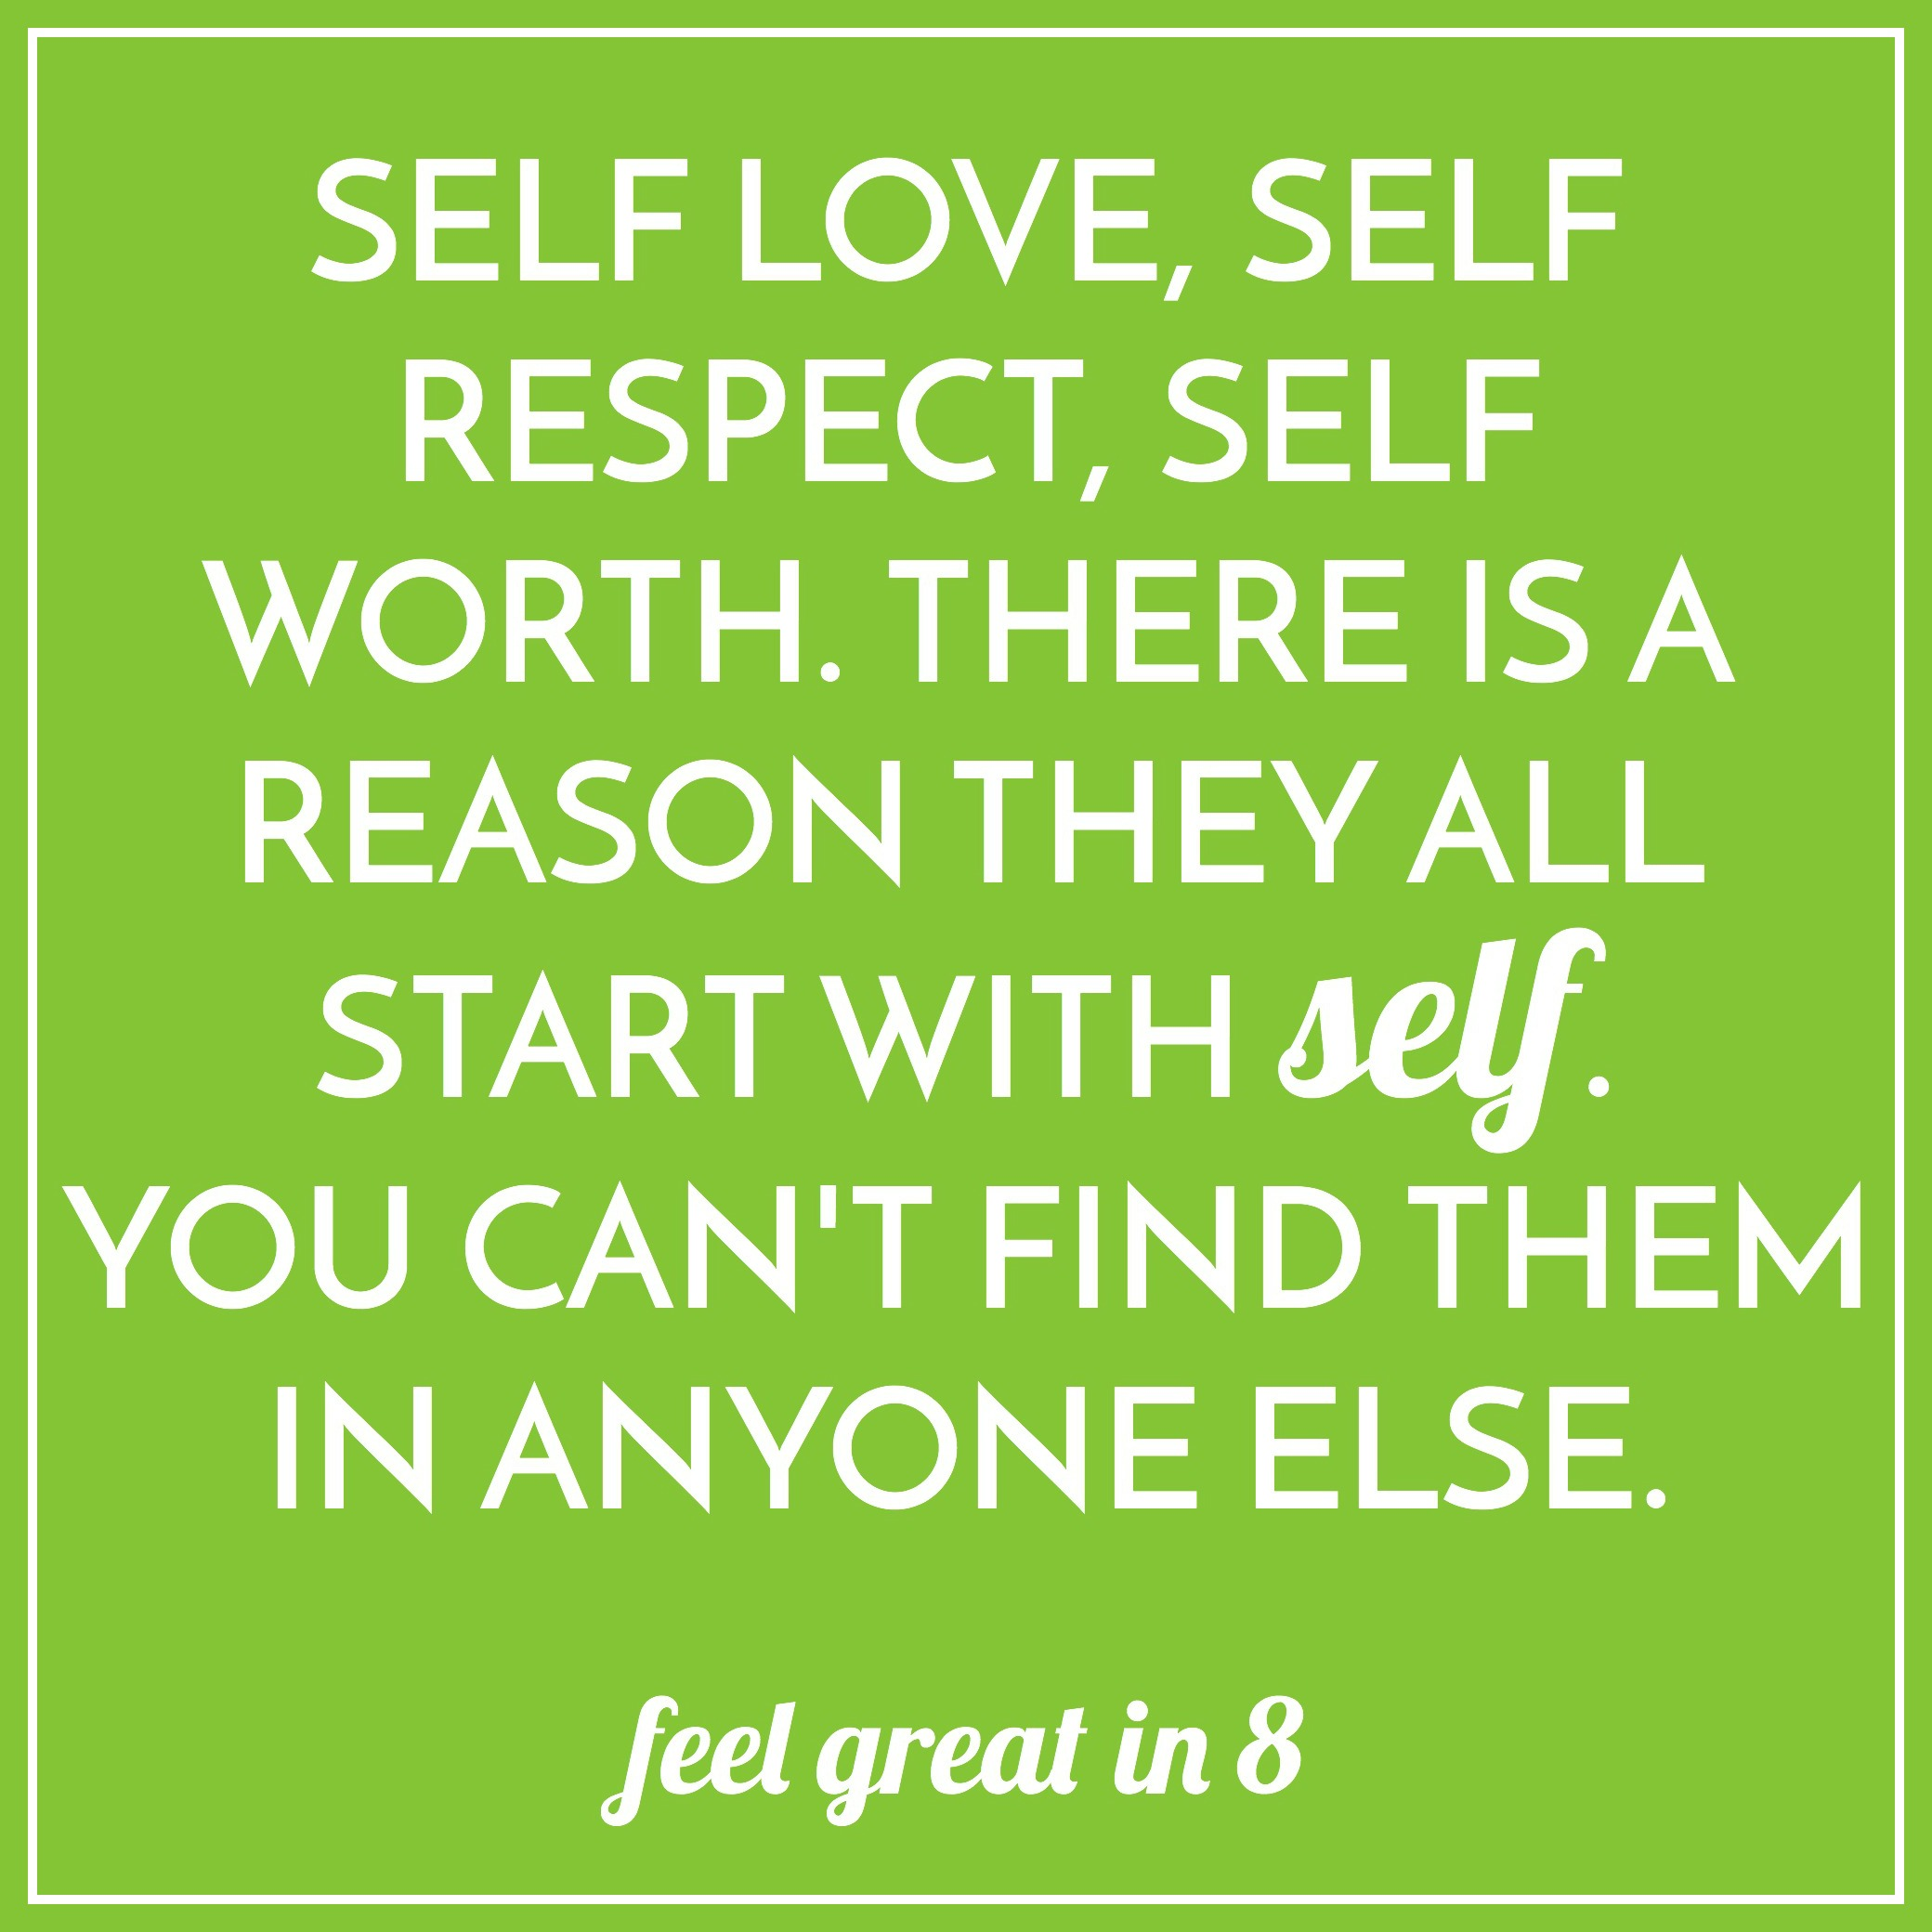 Quotes About Self Esteem 25 Quotes To Inspire & Brighten Your Day  Feel Great In 8 Blog